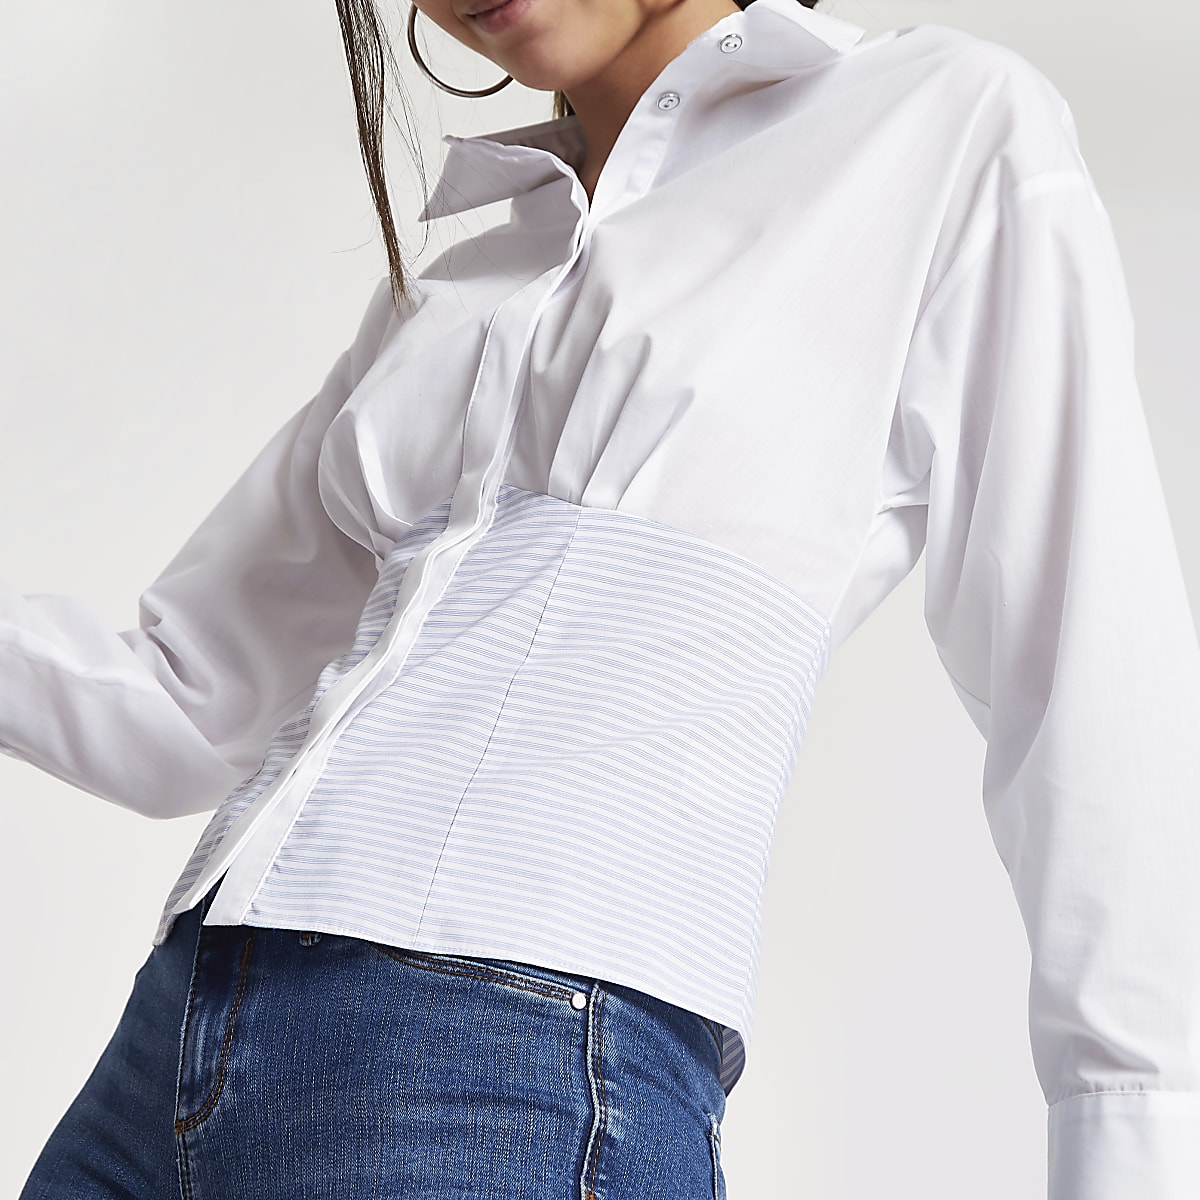 Blue stripe contrast fitted shirt